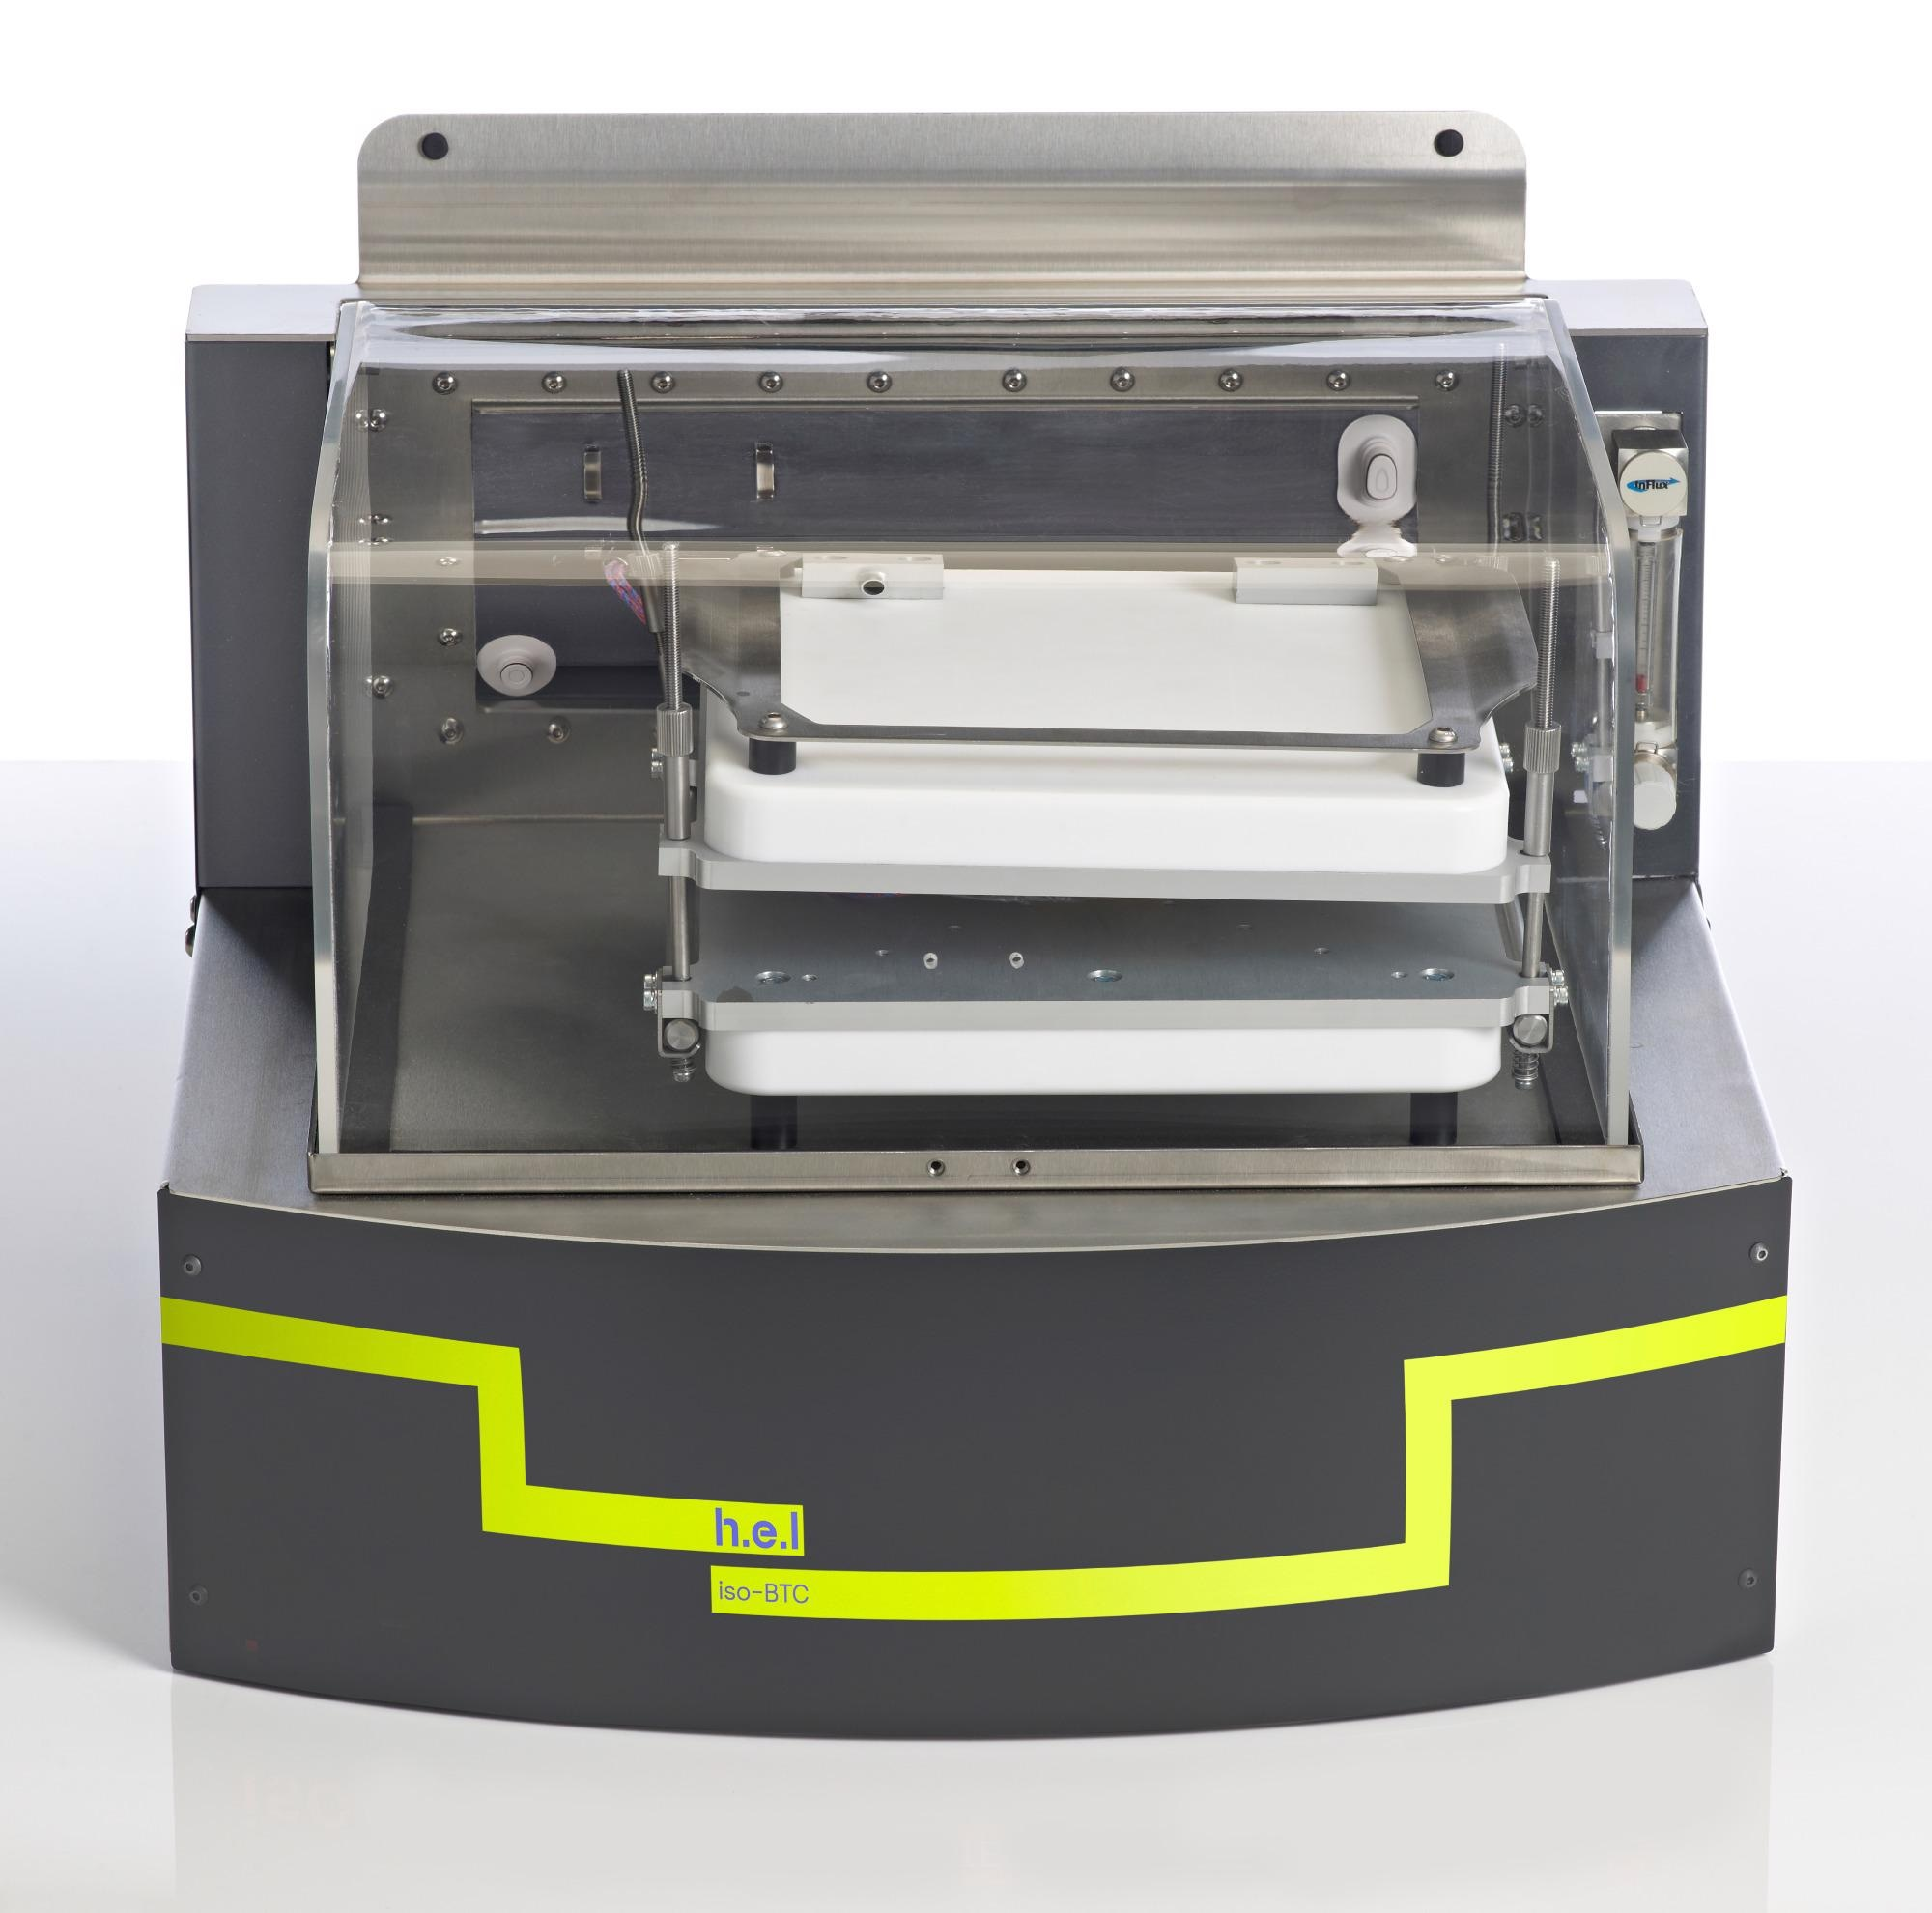 iso-BTC: A Bench-Top, Battery Performance Testing, Isothermal Calorimeter